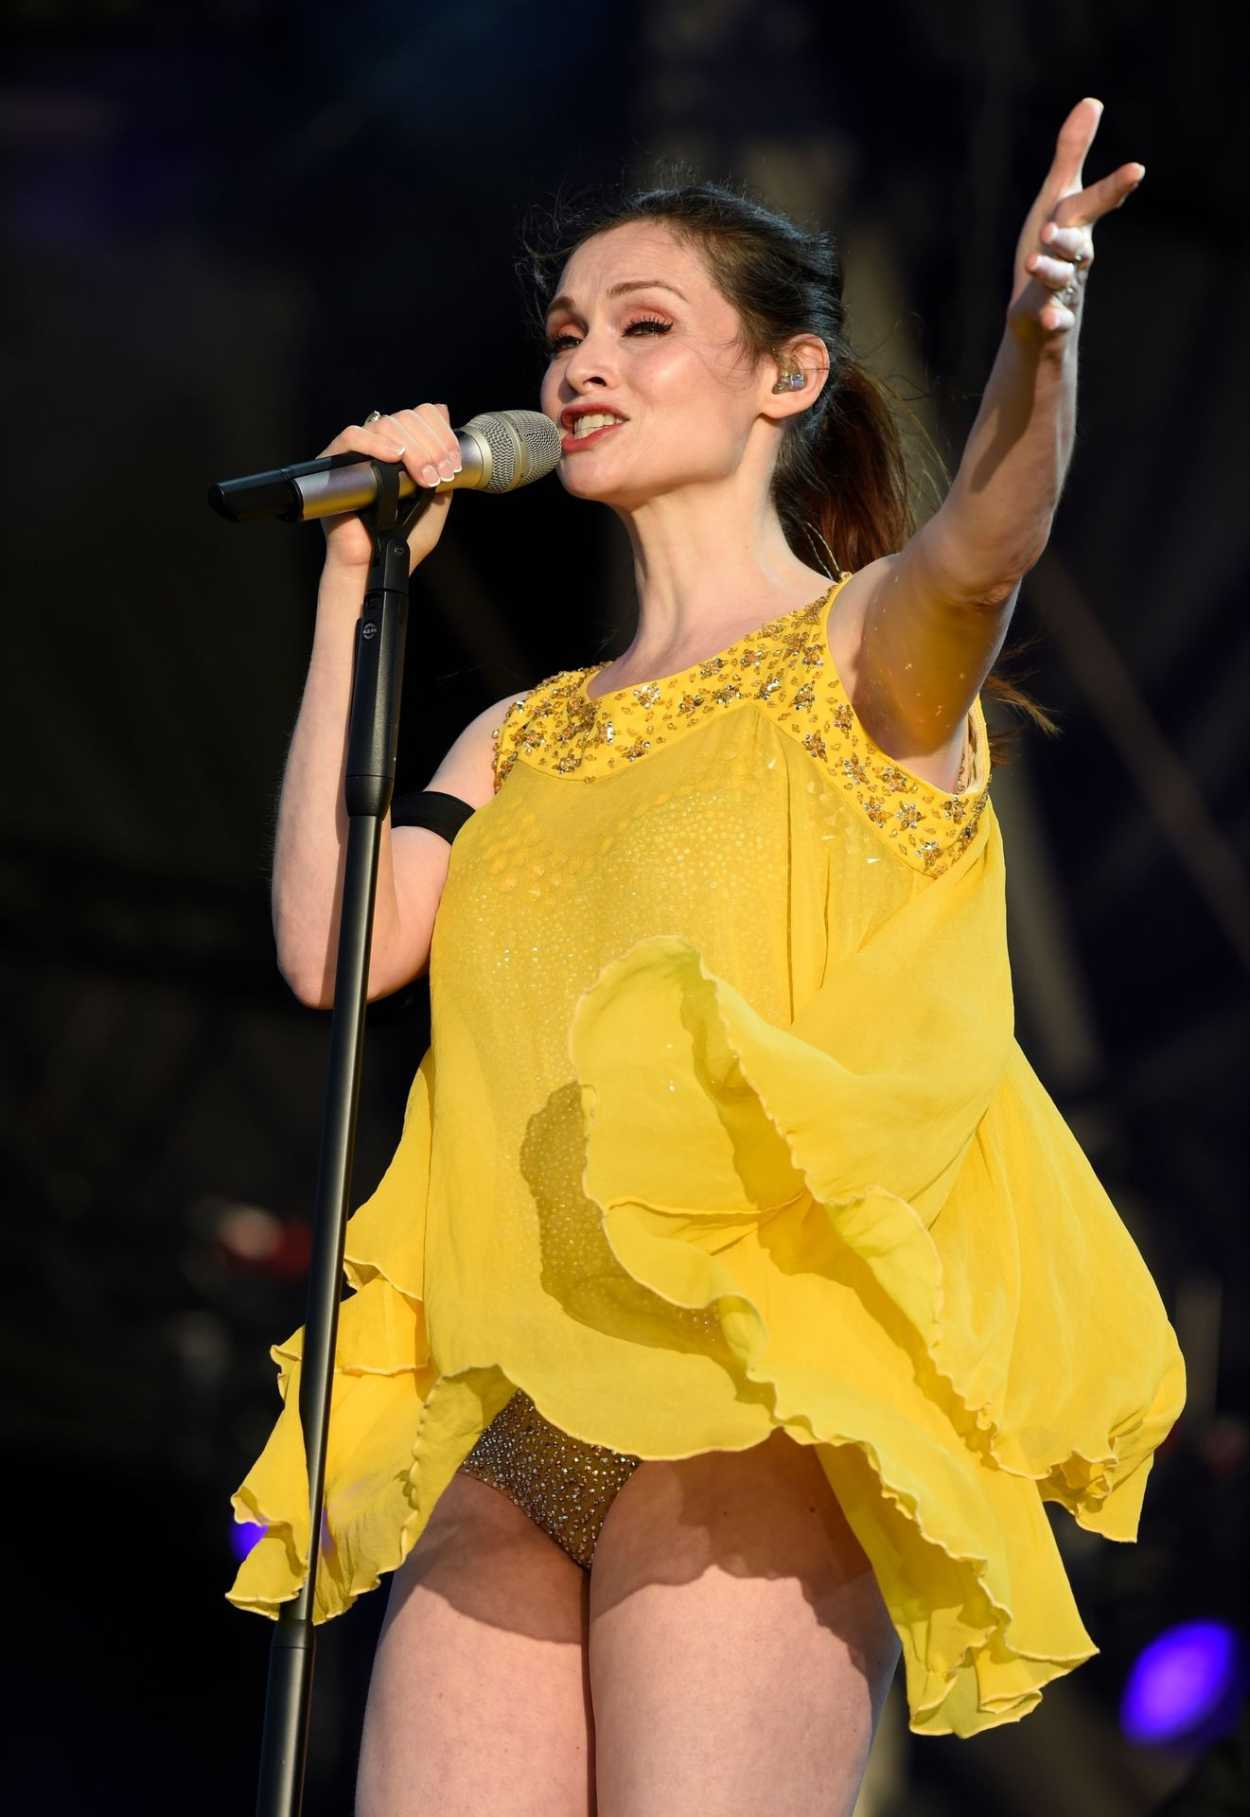 Sophie Ellis-Bextor in a Short Yellow Dress Performs at